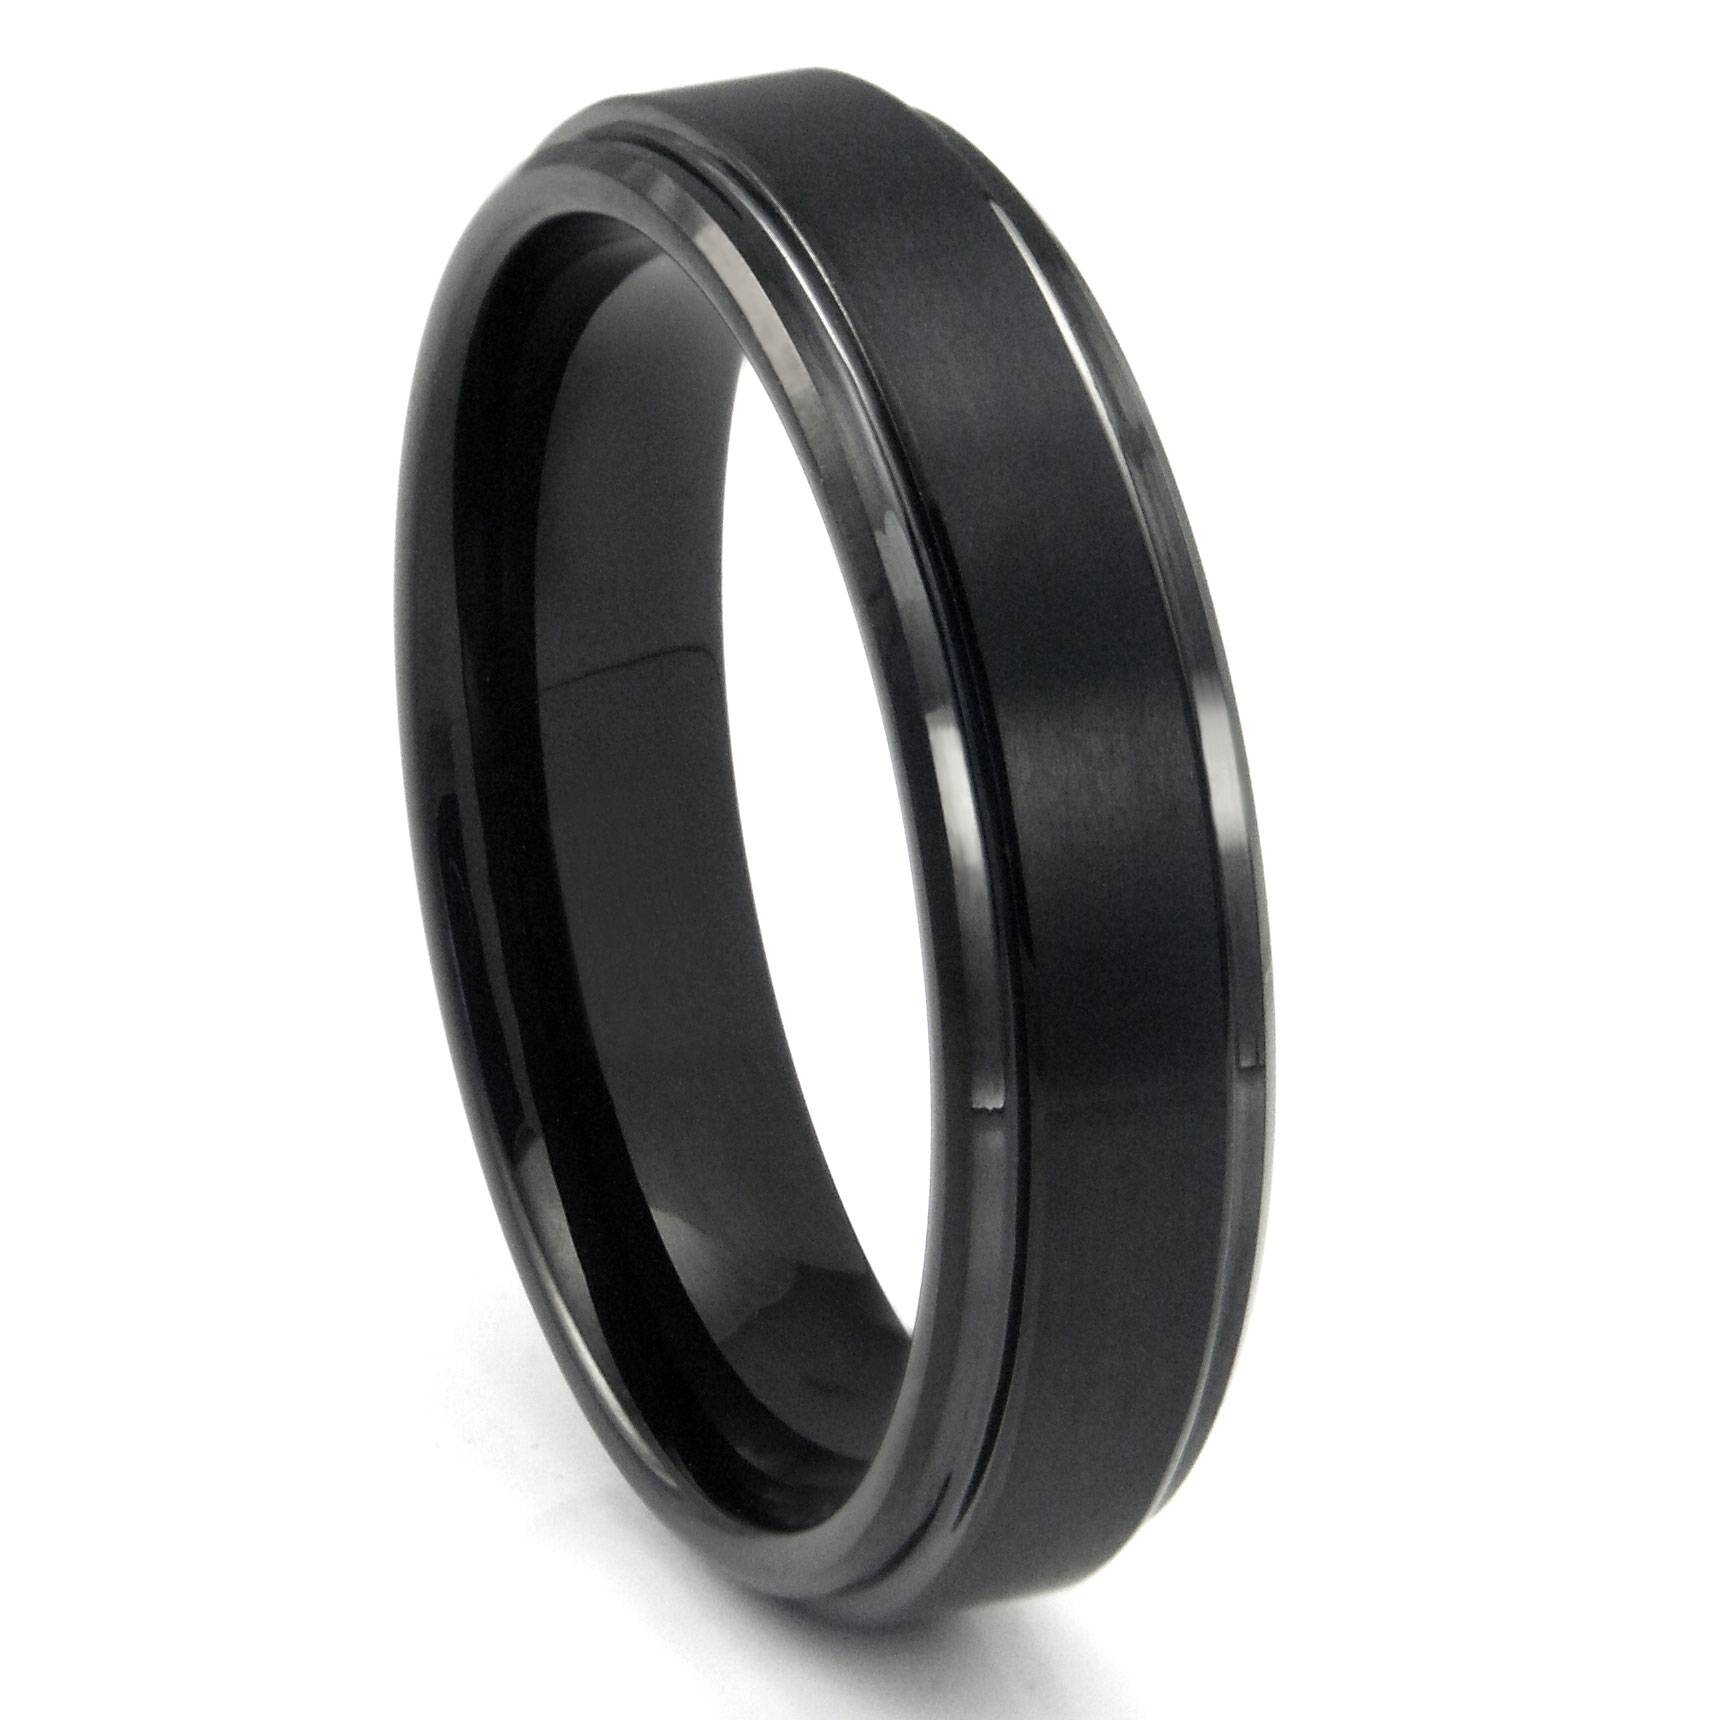 Black Tungsten Carbide Wedding Band Ring W/ Raised Center Within Black Metal Wedding Bands (View 8 of 15)